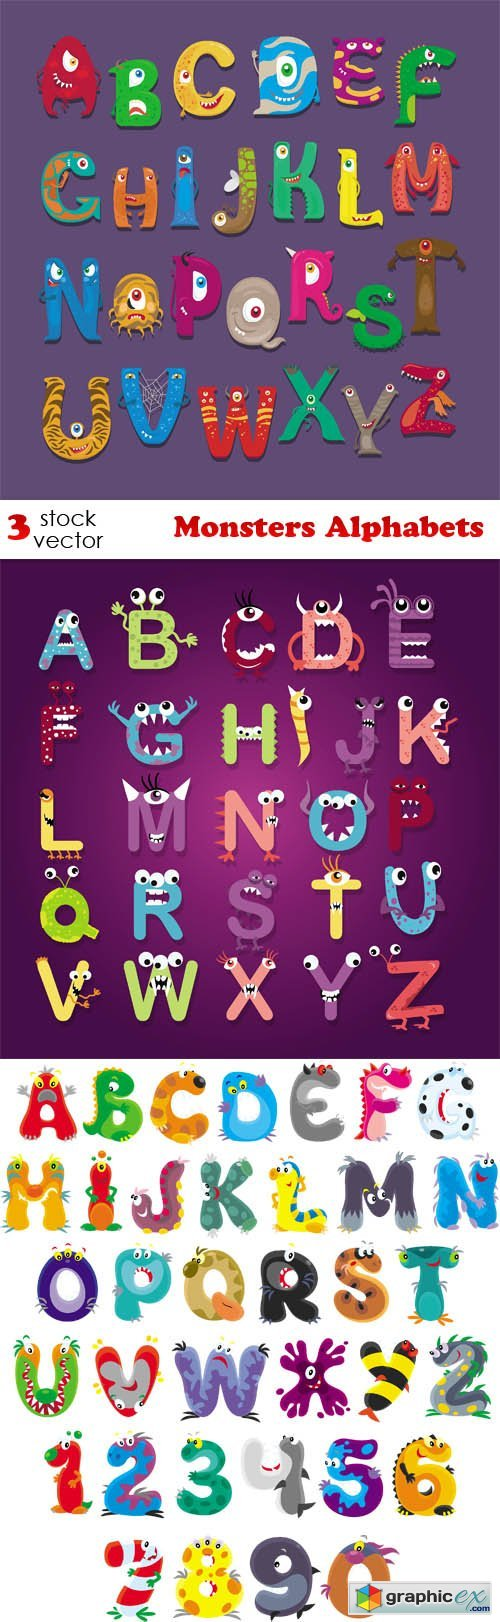 Monsters Alphabets